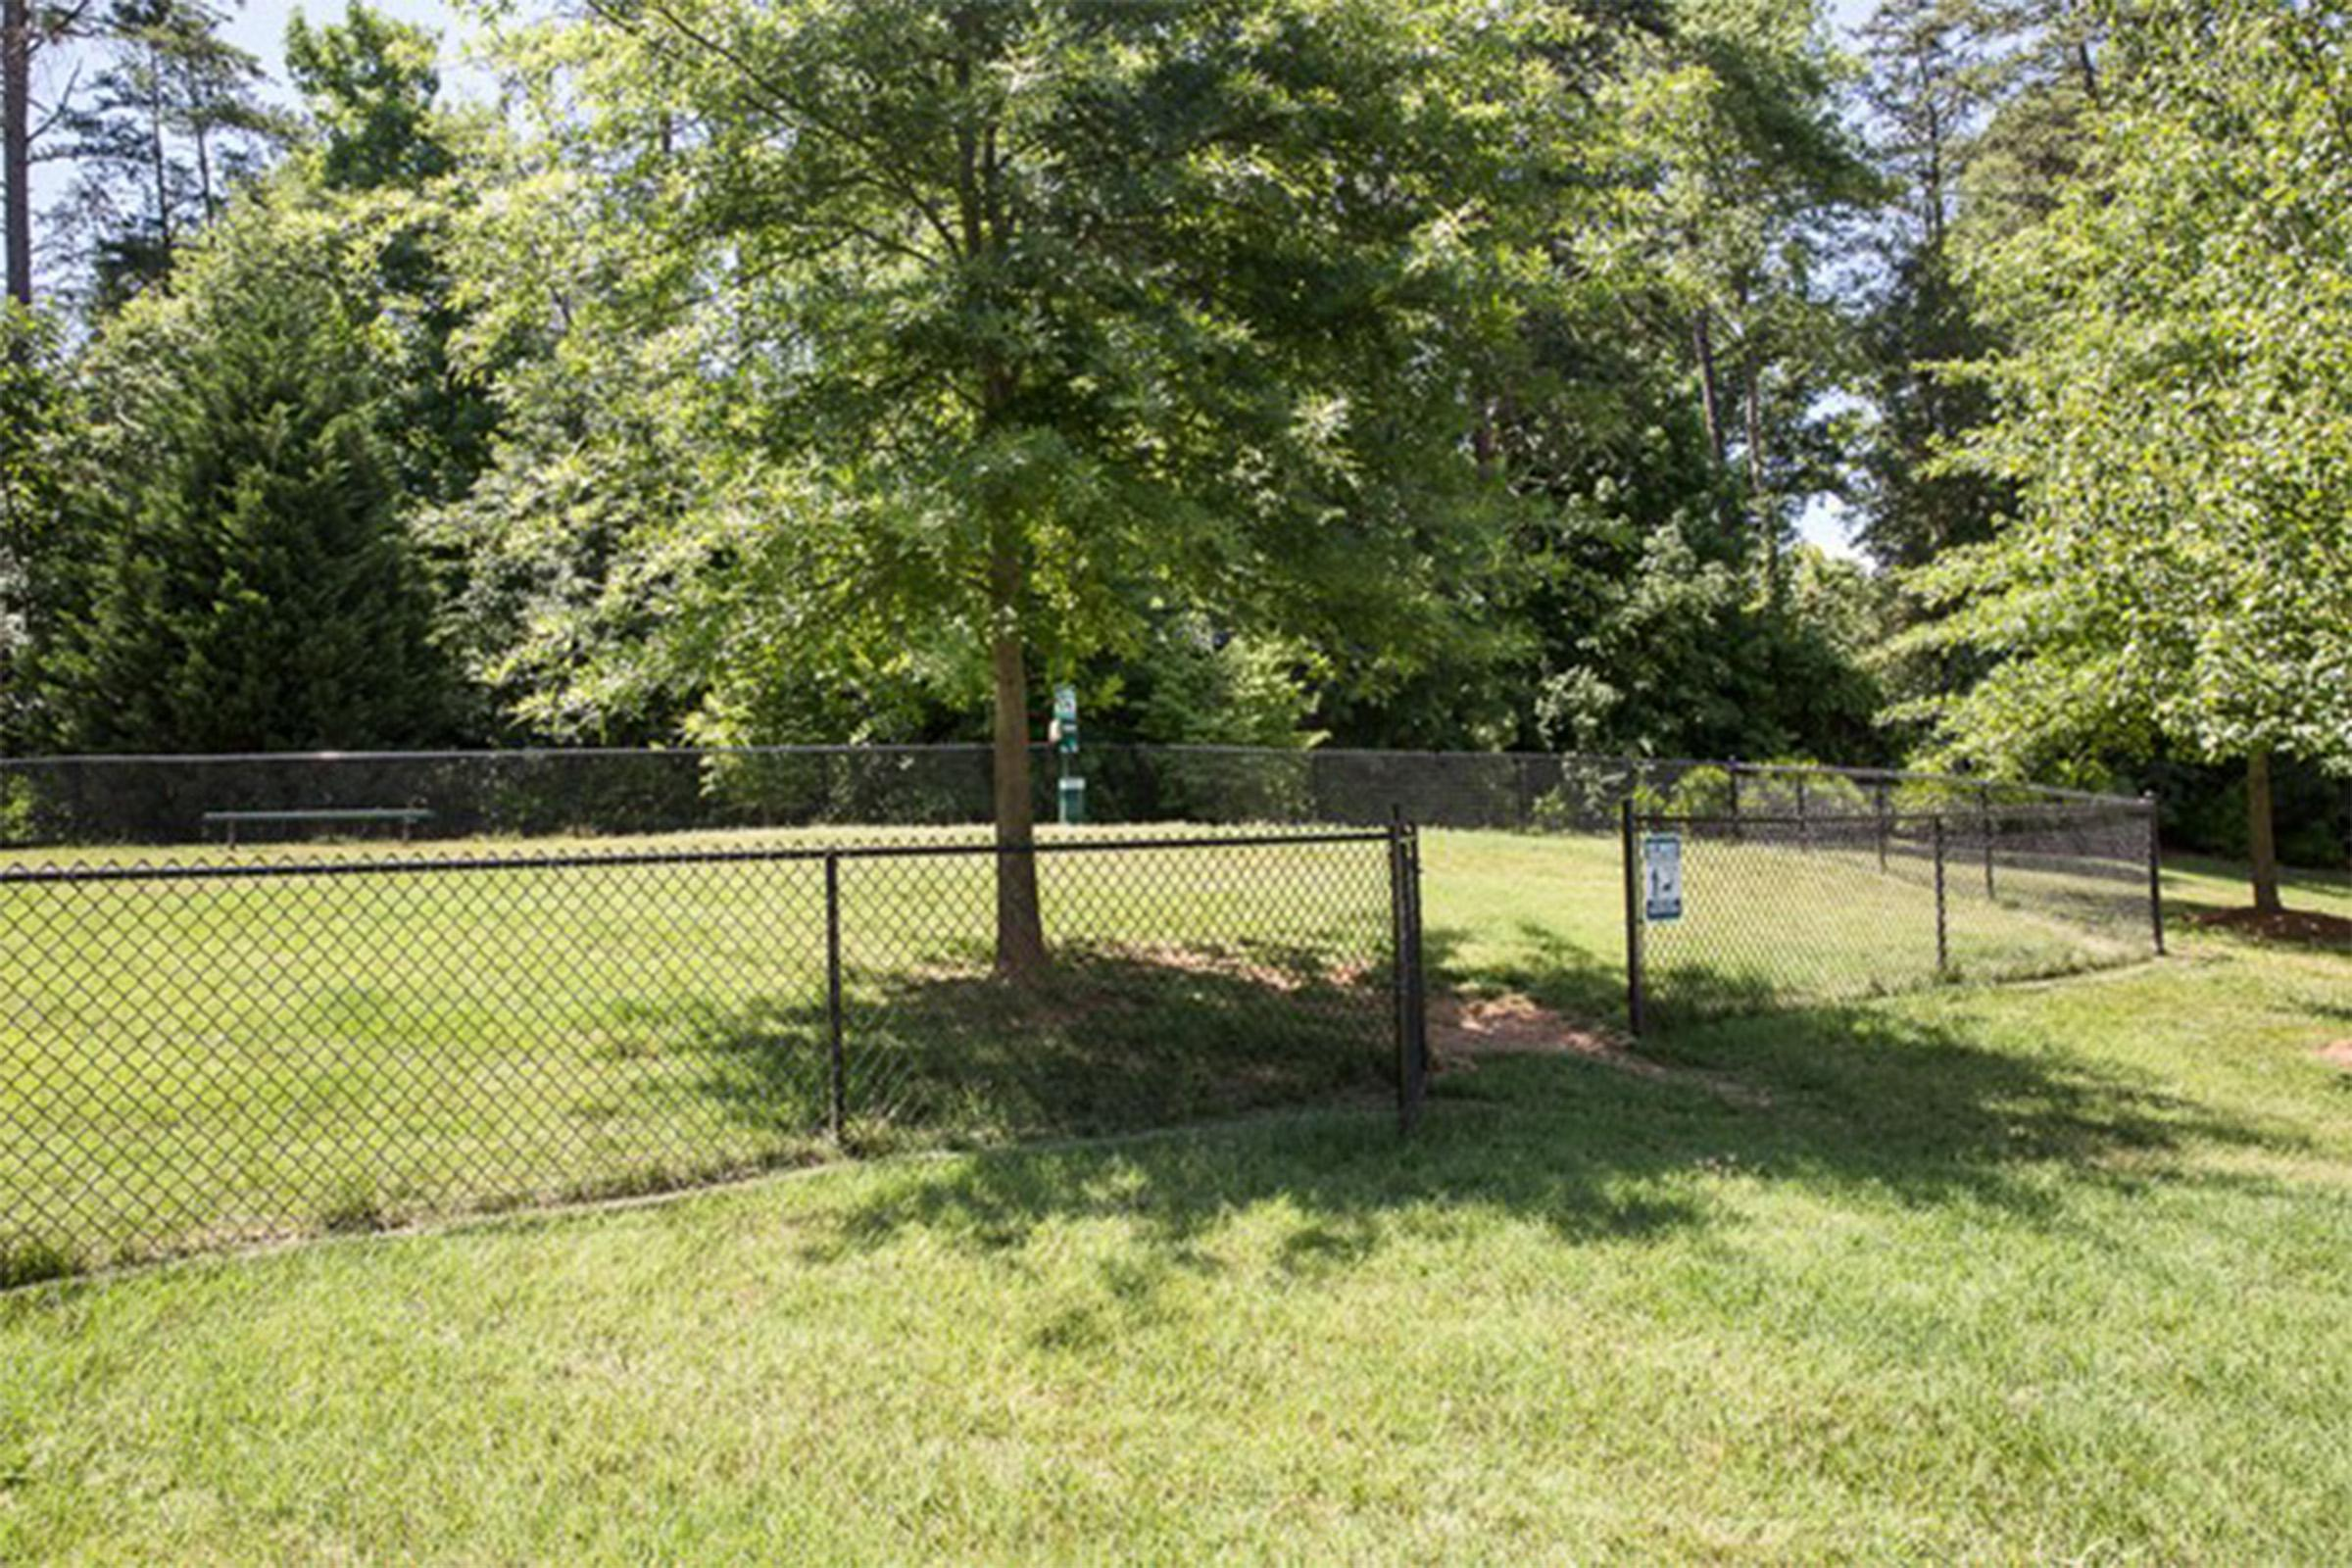 a tree in a fenced in area